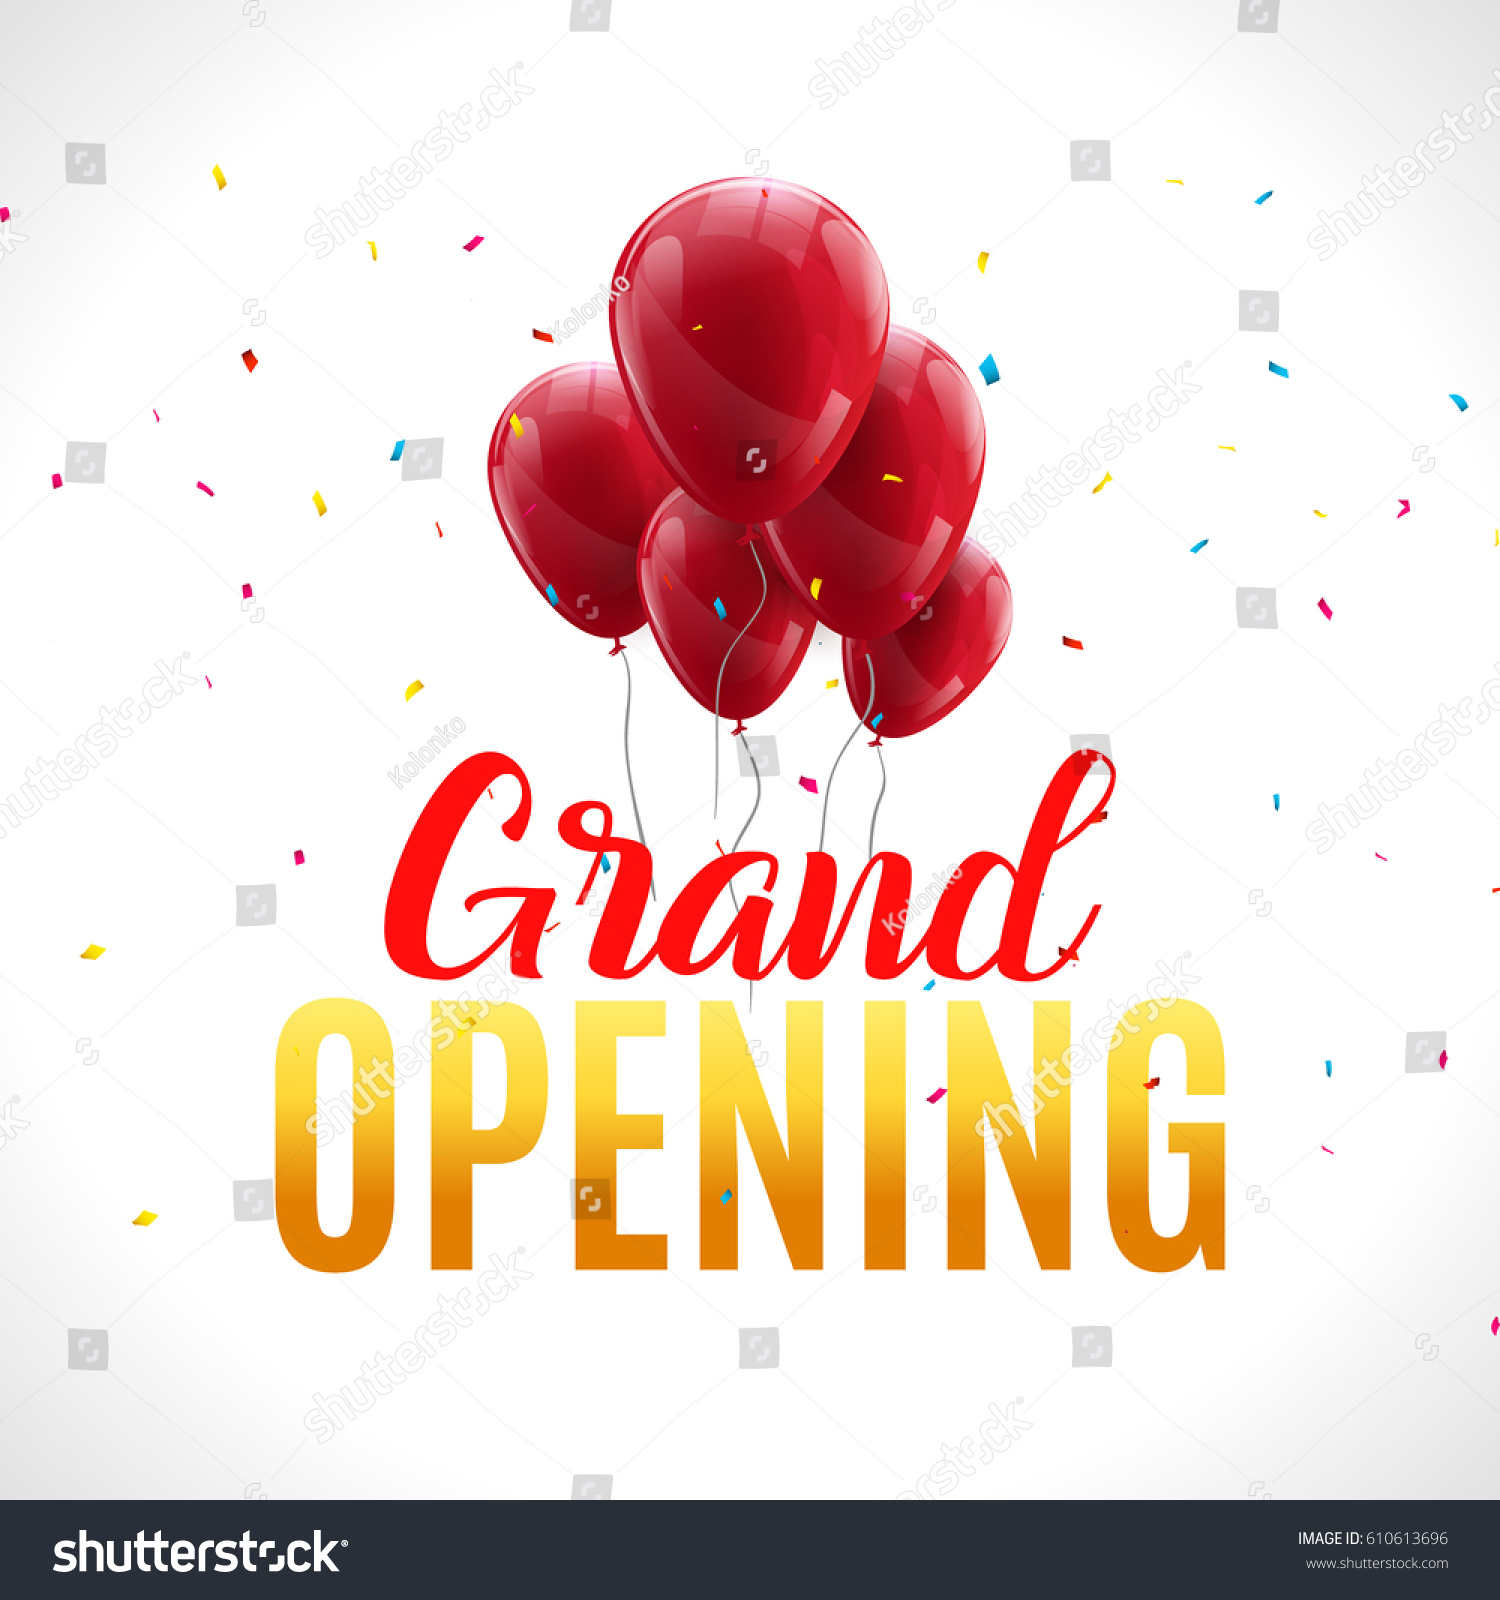 Grand opening event invitation banner red stock vector royalty free grand opening event invitation banner with red balloons and confetti grand opening ceremony poster template m4hsunfo